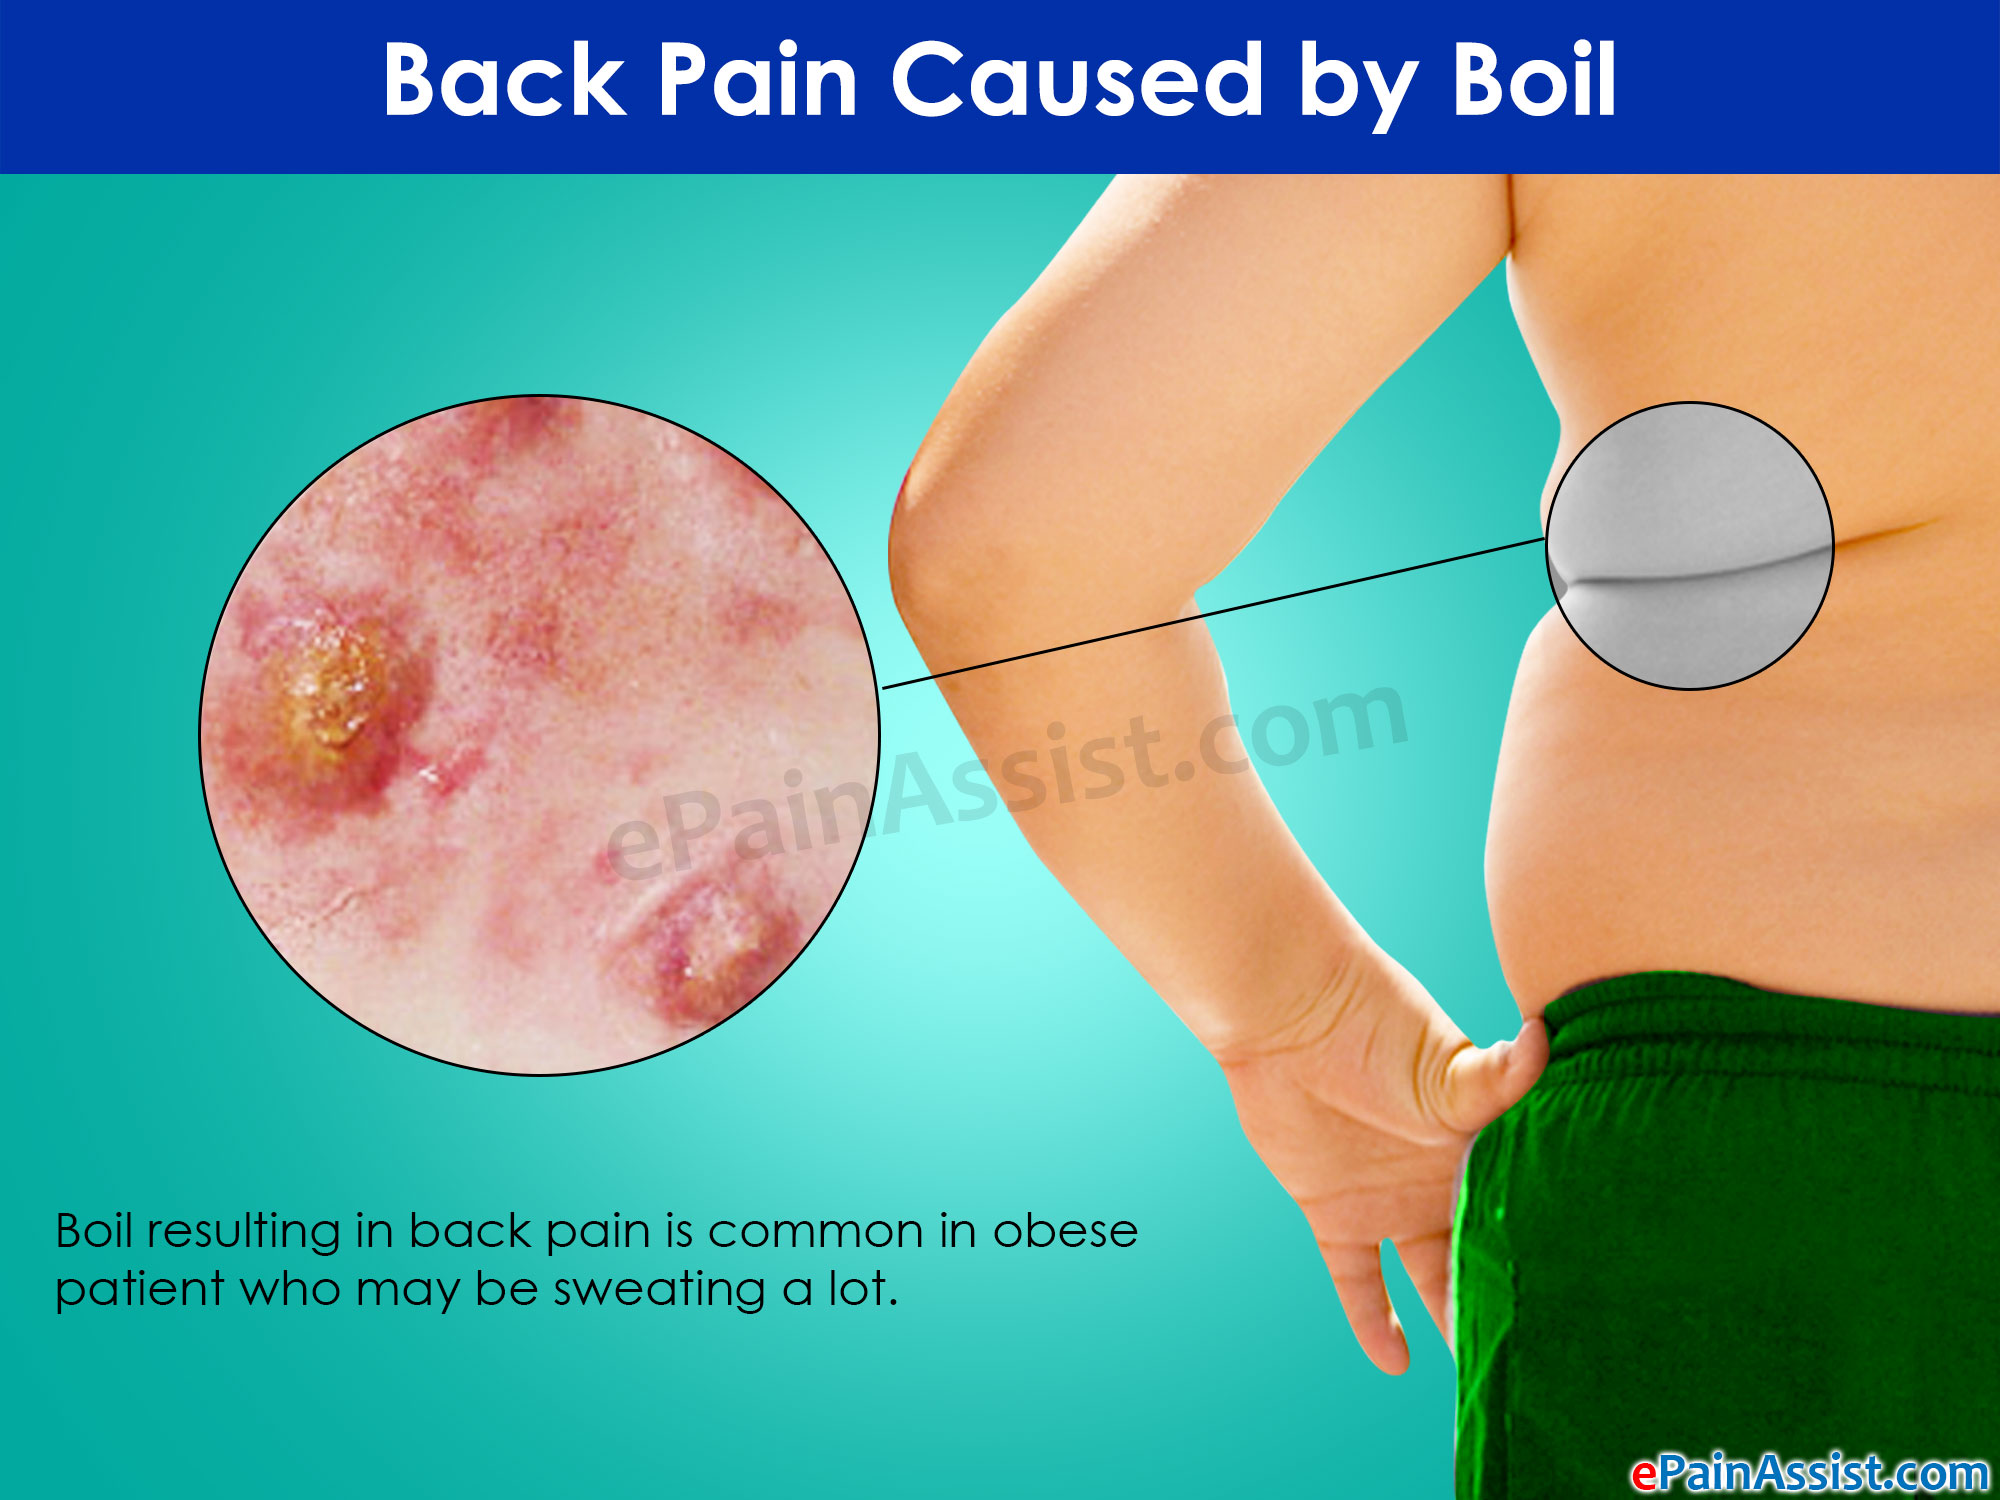 Back Pain Caused by Boil